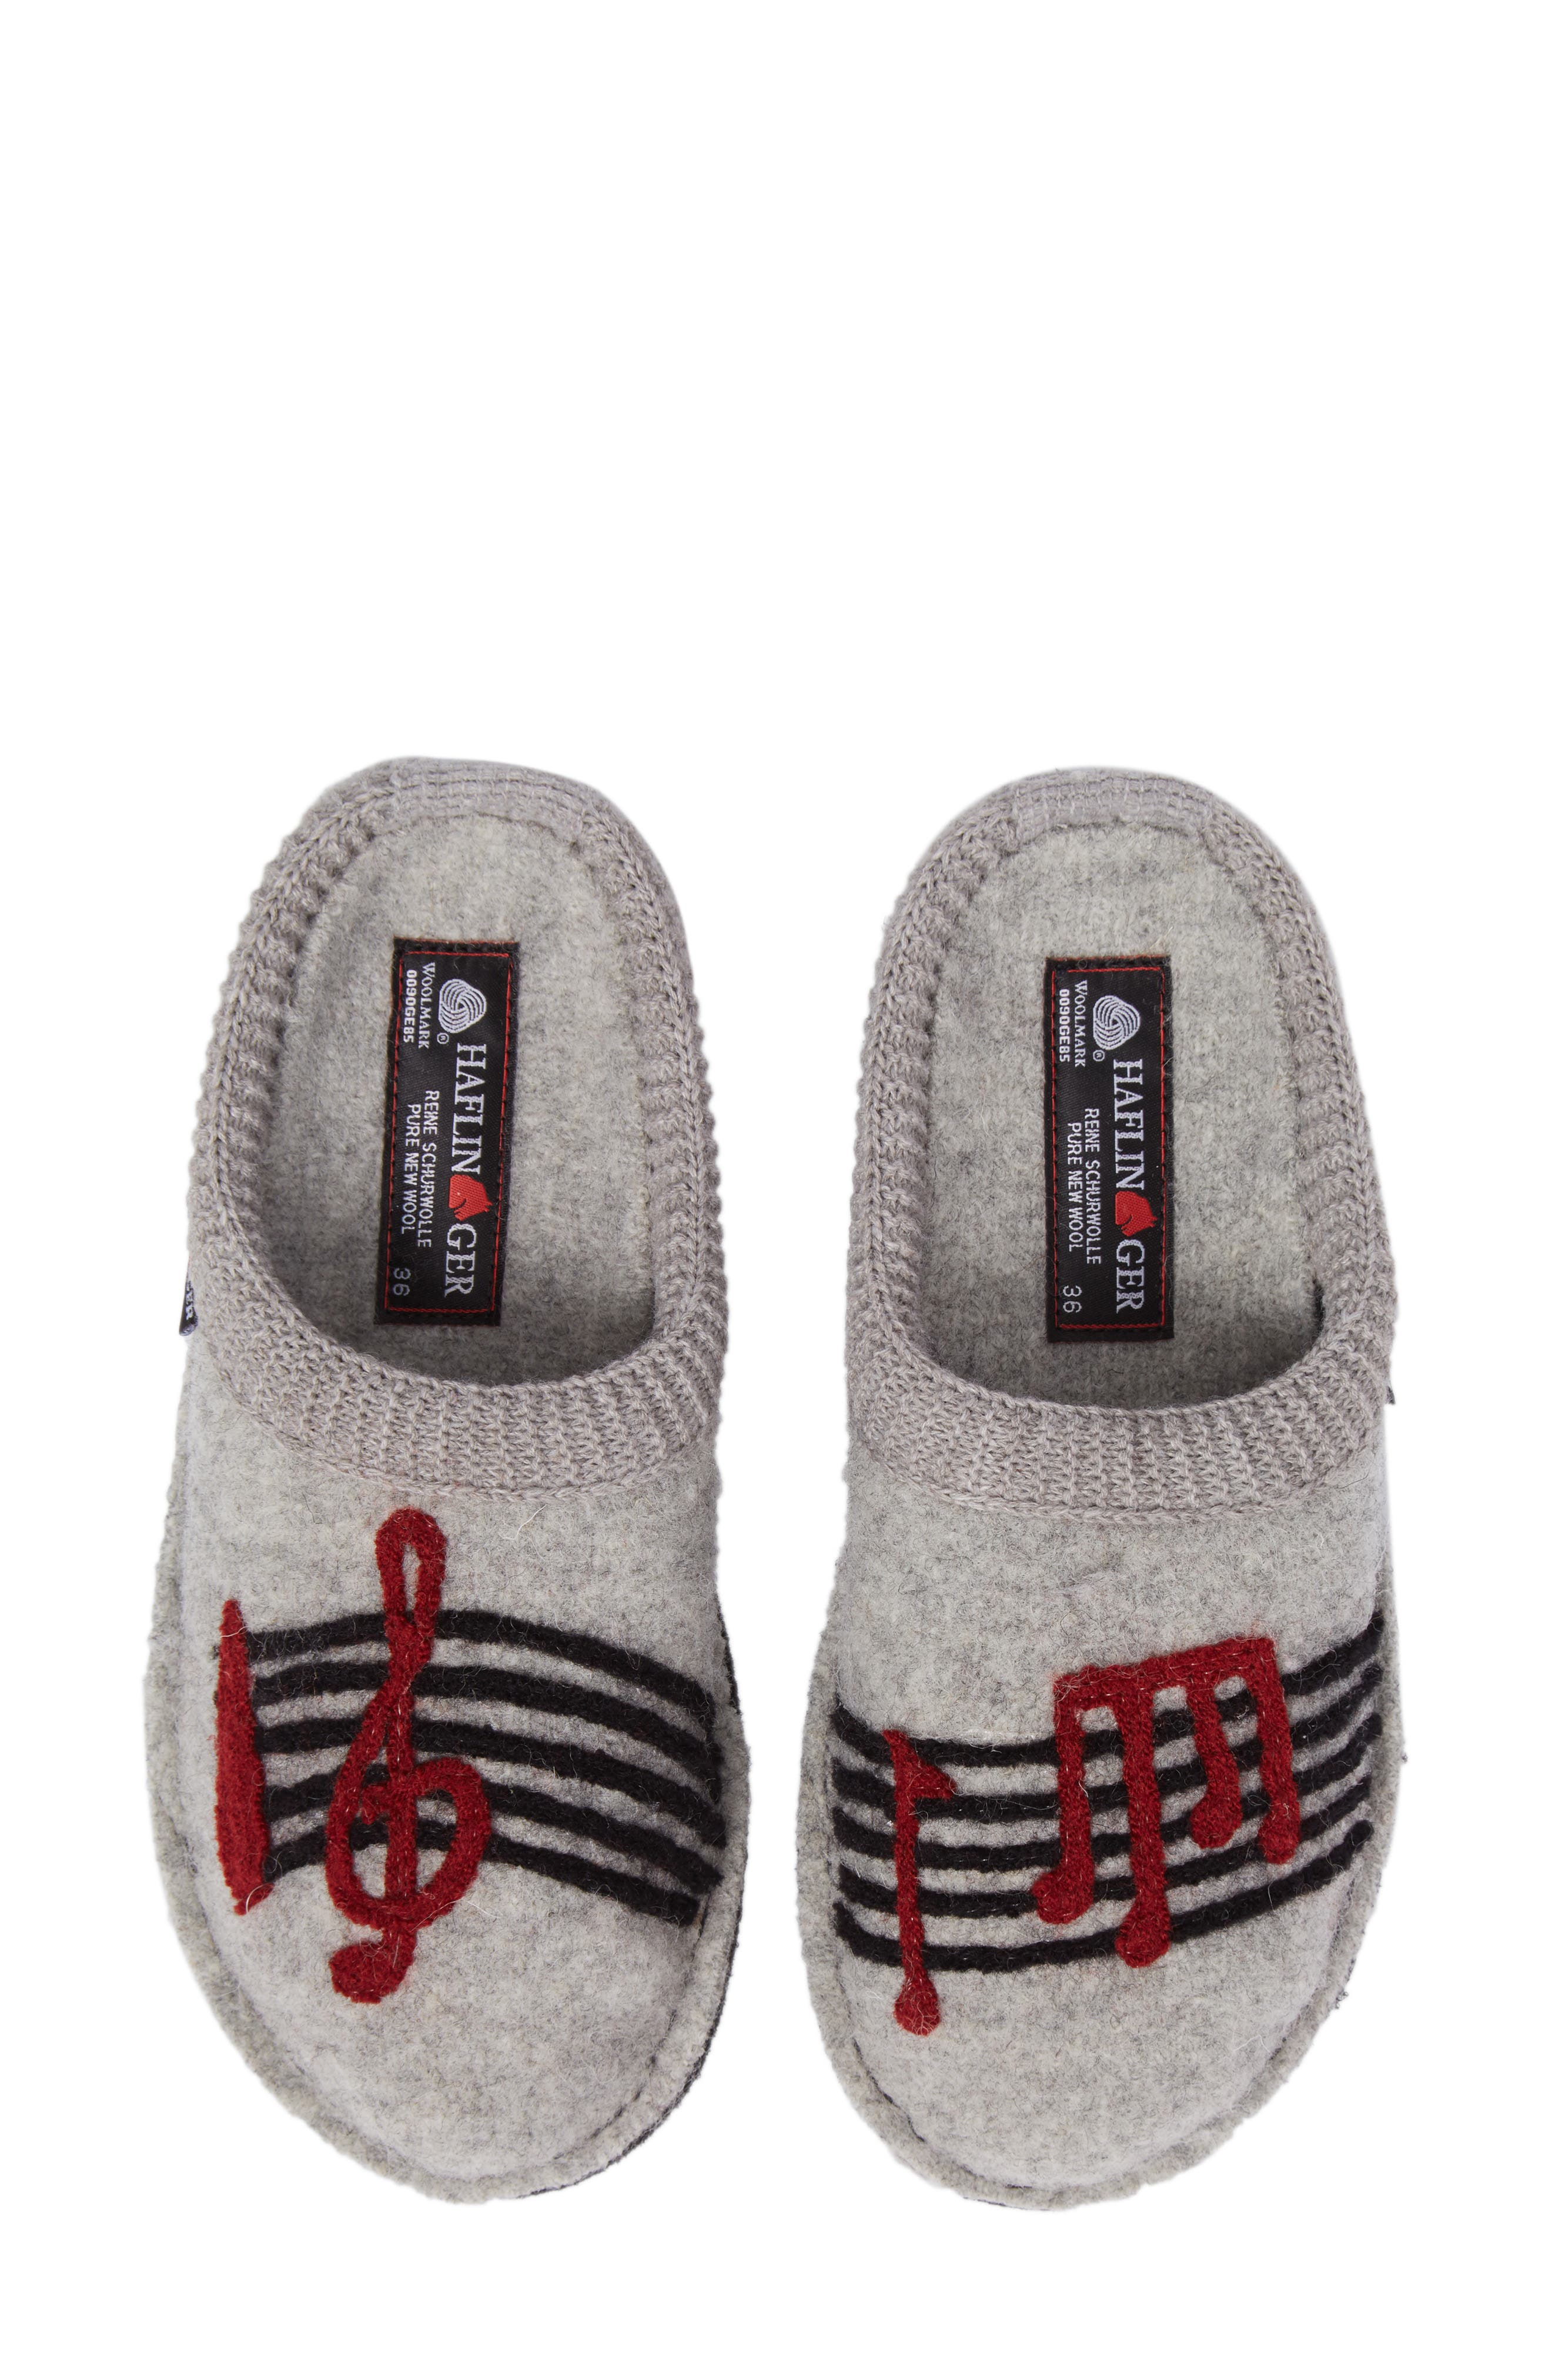 Beethoven Slipper,                         Main,                         color, Silver Grey Wool